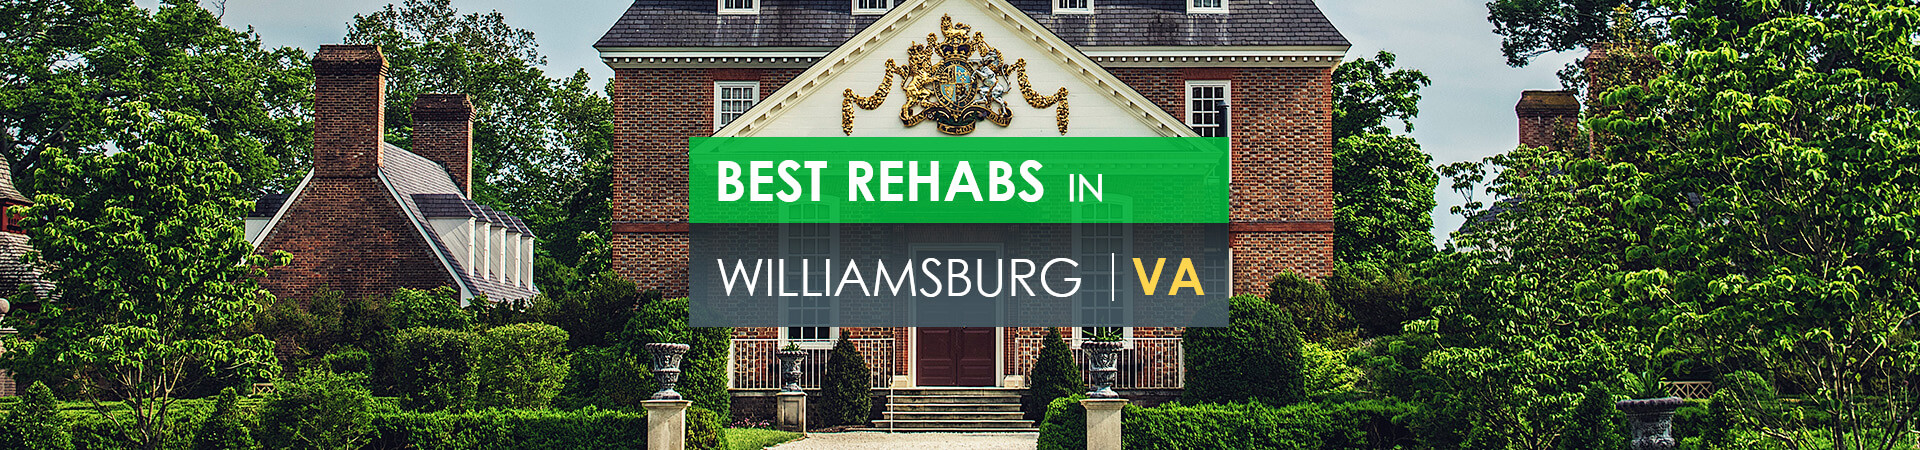 Best rehabs in Williamsburg, VA